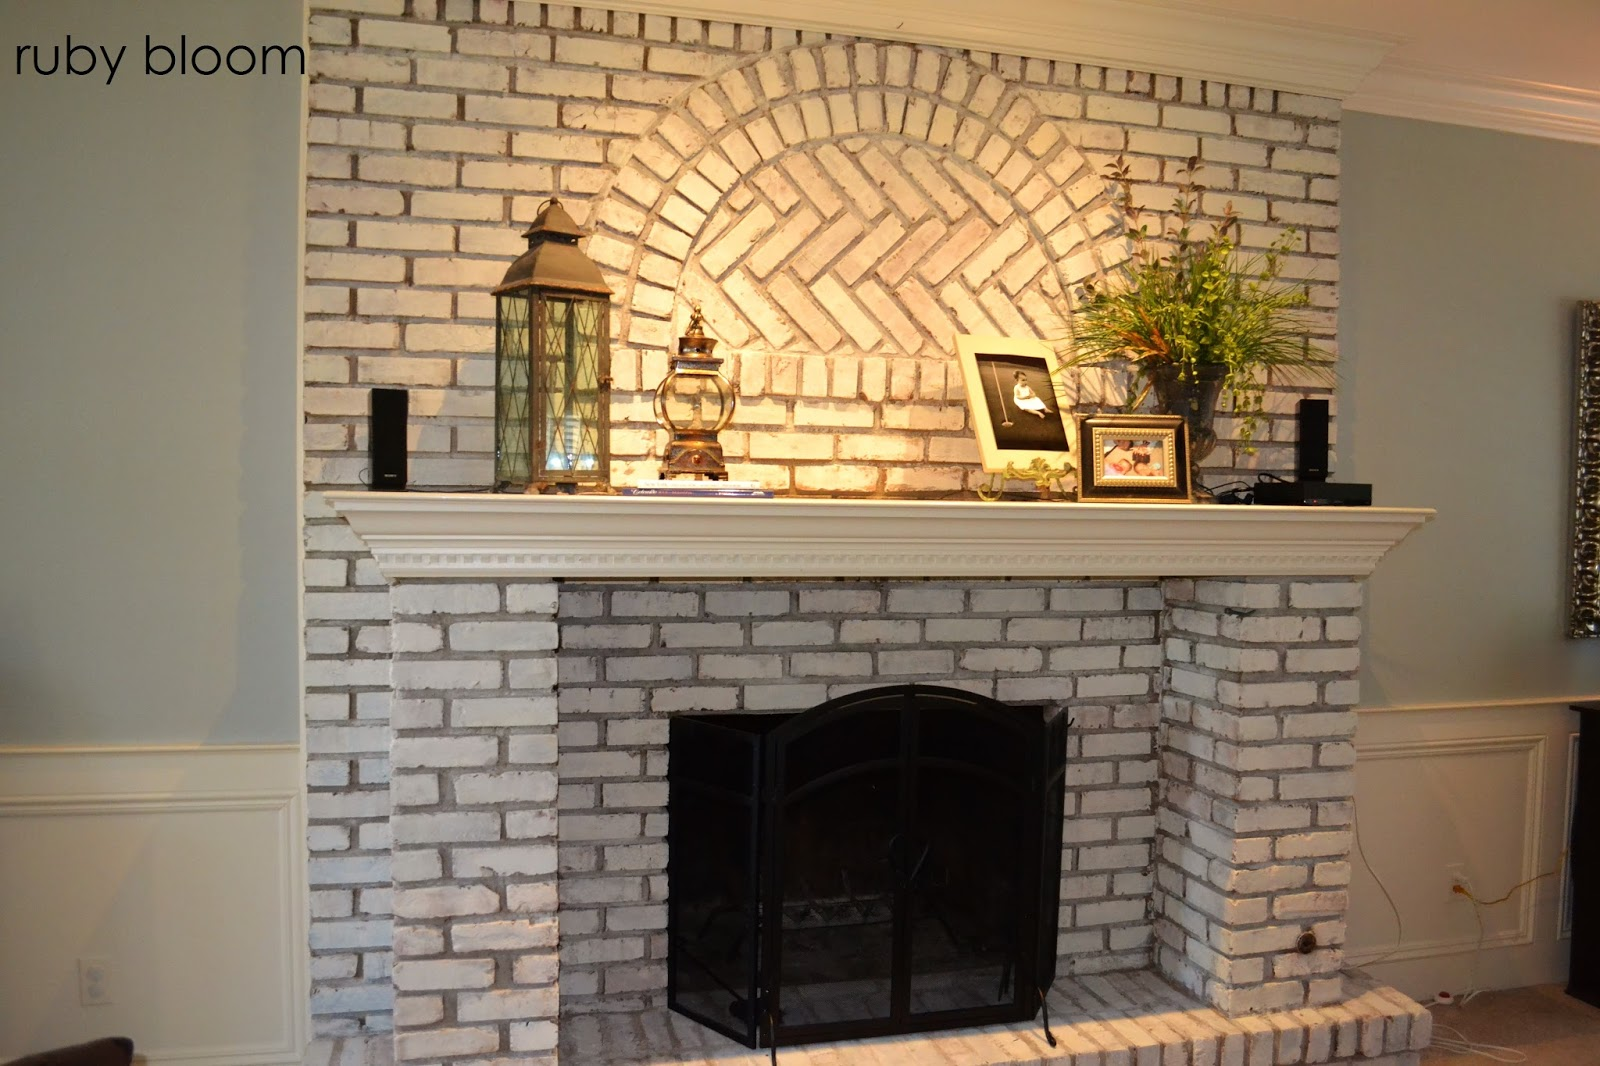 Painting Interior Brick Fireplace: Ruby Bloom: Painted Brick Fireplace